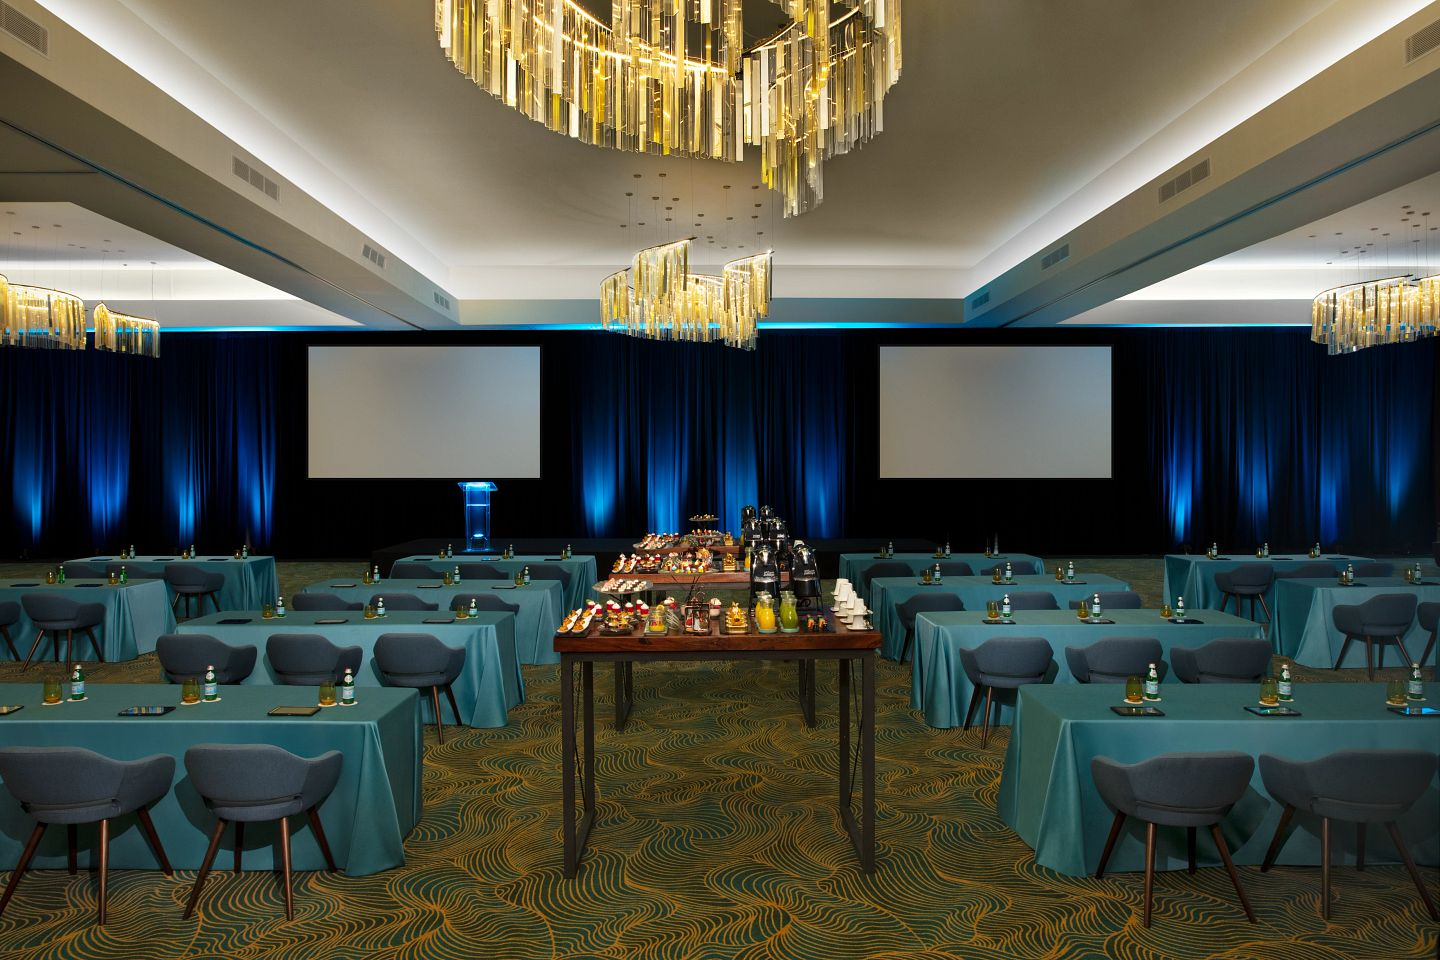 ballroom meeting set-up with ample seating, projectors and food